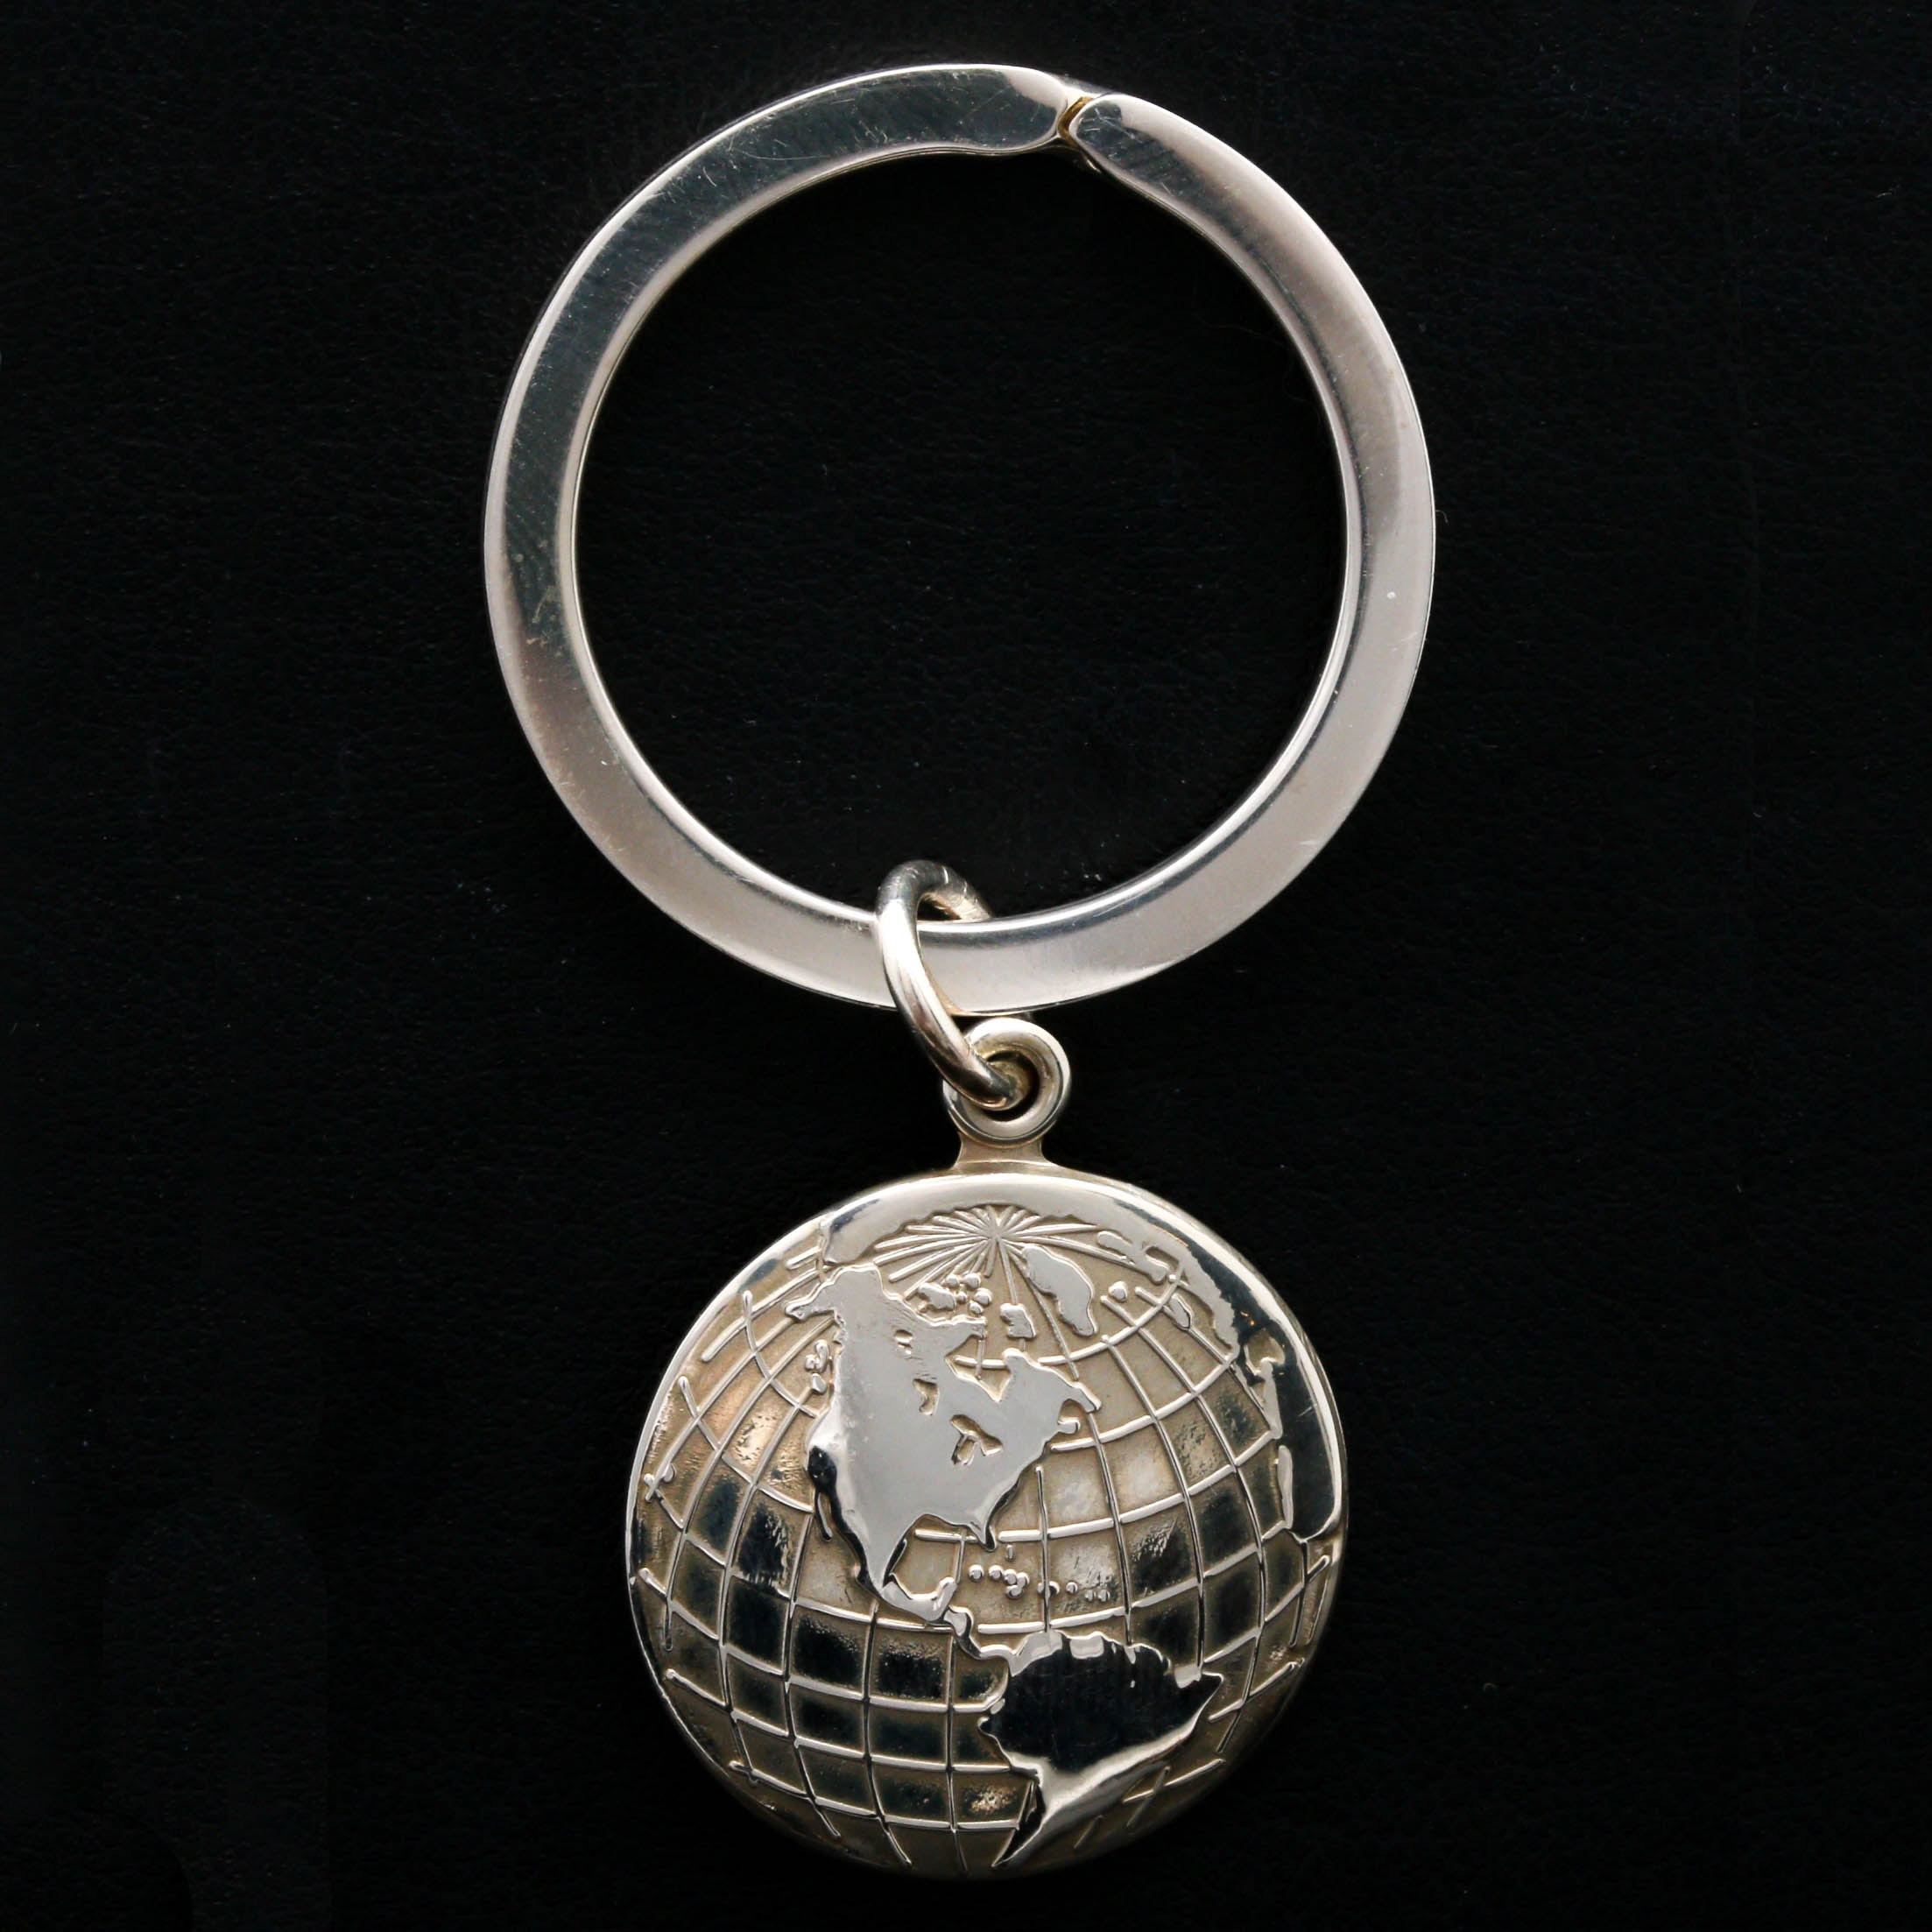 Tiffany & Co. Sterling Silver Globe Keyring